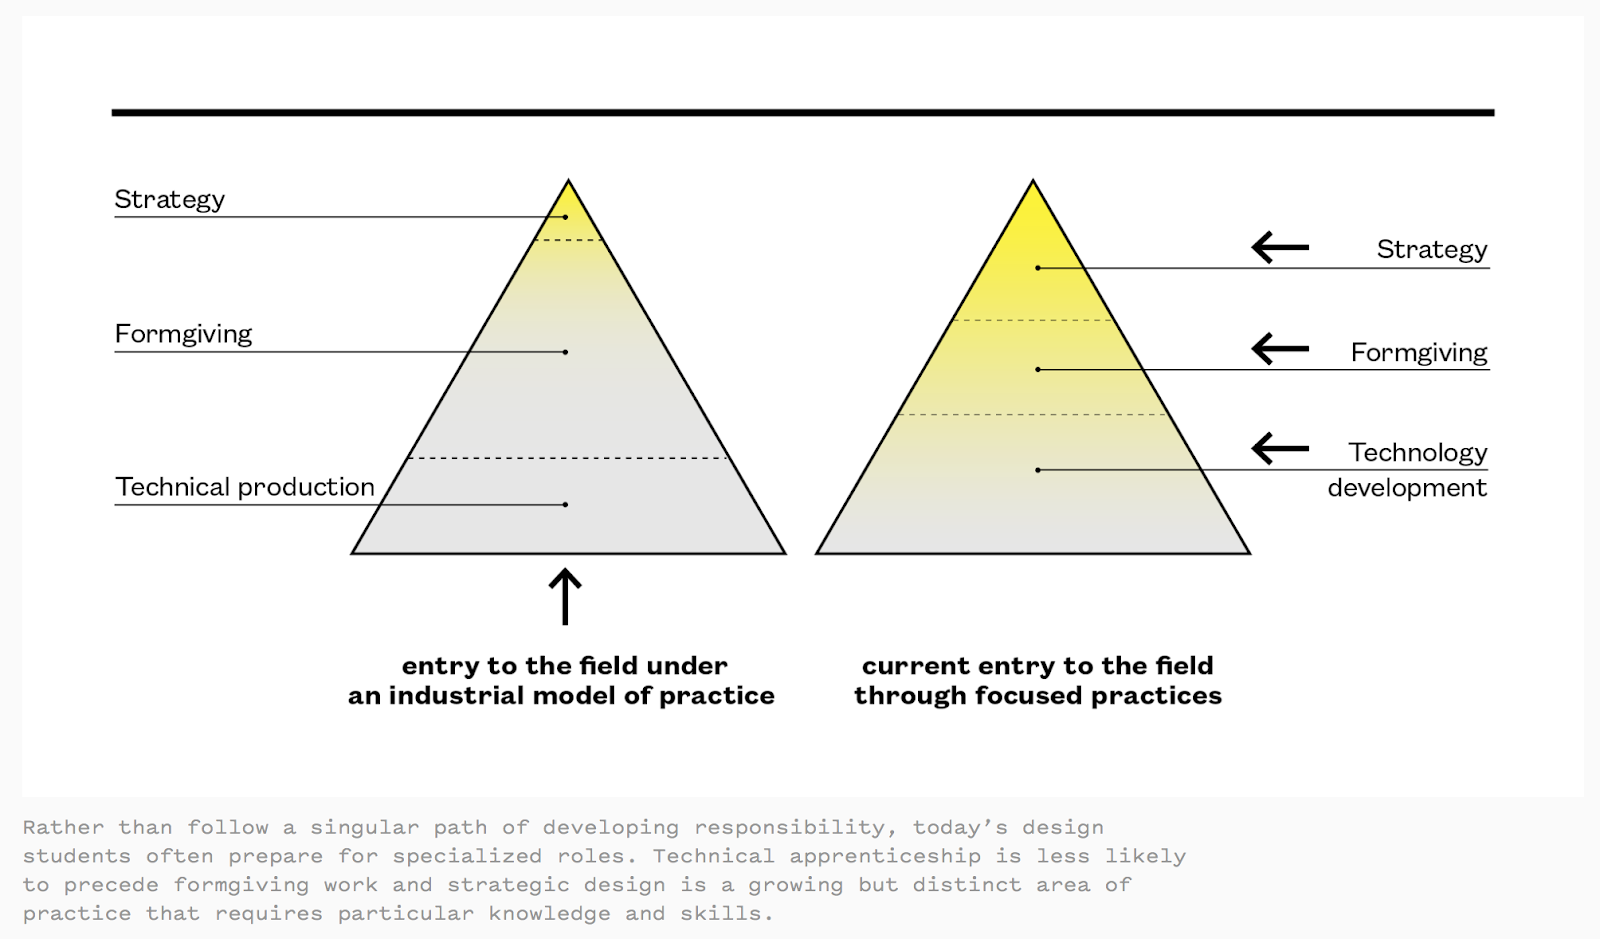 Entry to the field under an industrial model of practice vs through focused practice